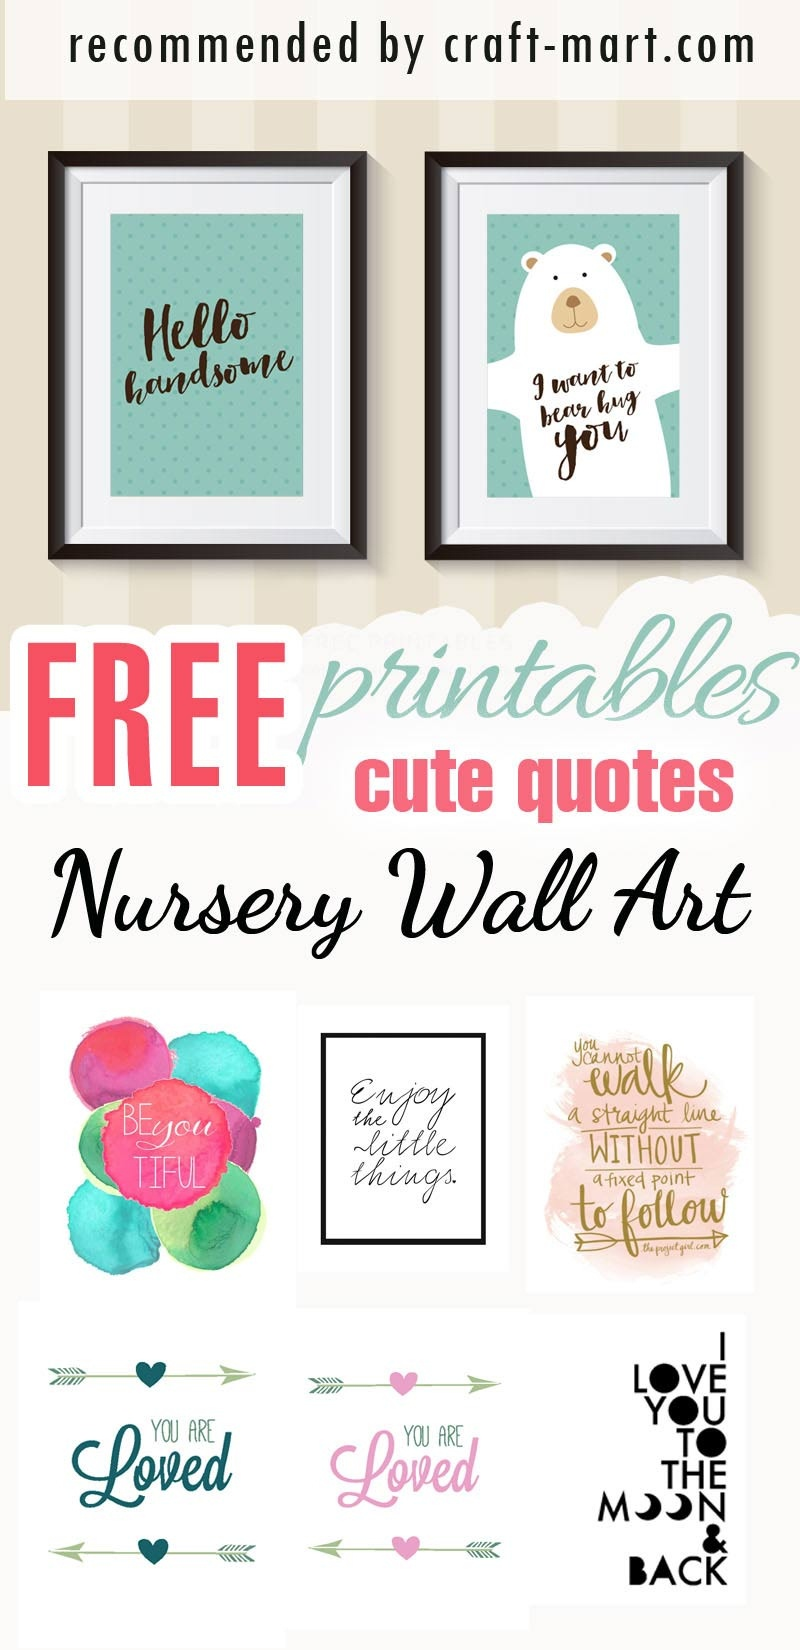 100+ Best Free Nursery Printables And Wall Art - Craft-Mart - Free Printable Wall Posters